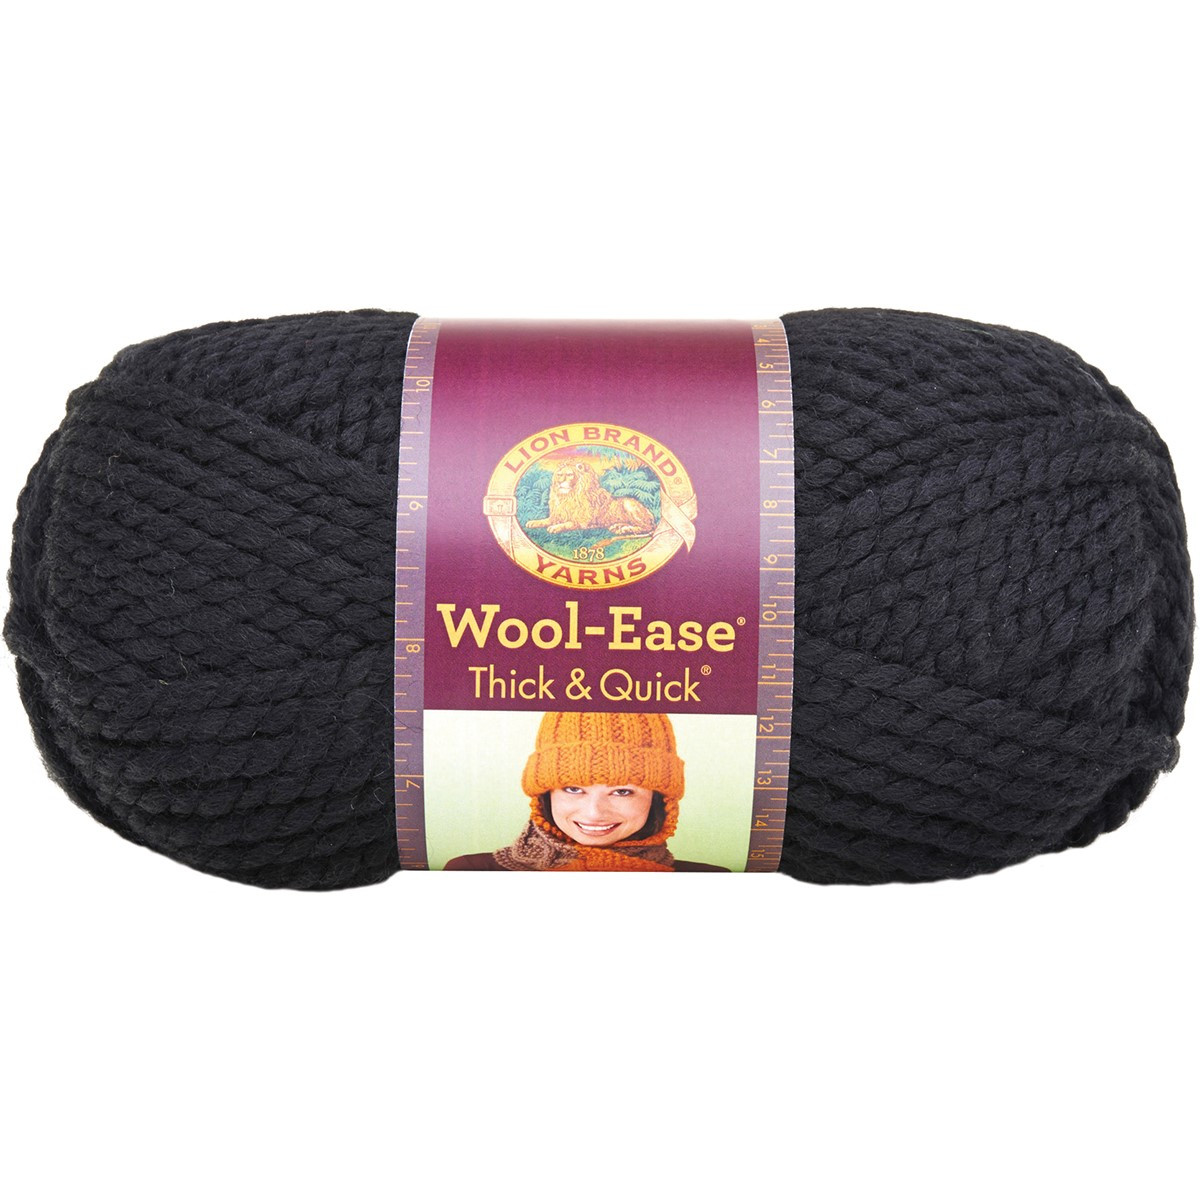 Wool Ease Thick and Quick Best Of Wool Ease Thick & Quick Yarn Black Of Adorable 45 Photos Wool Ease Thick and Quick